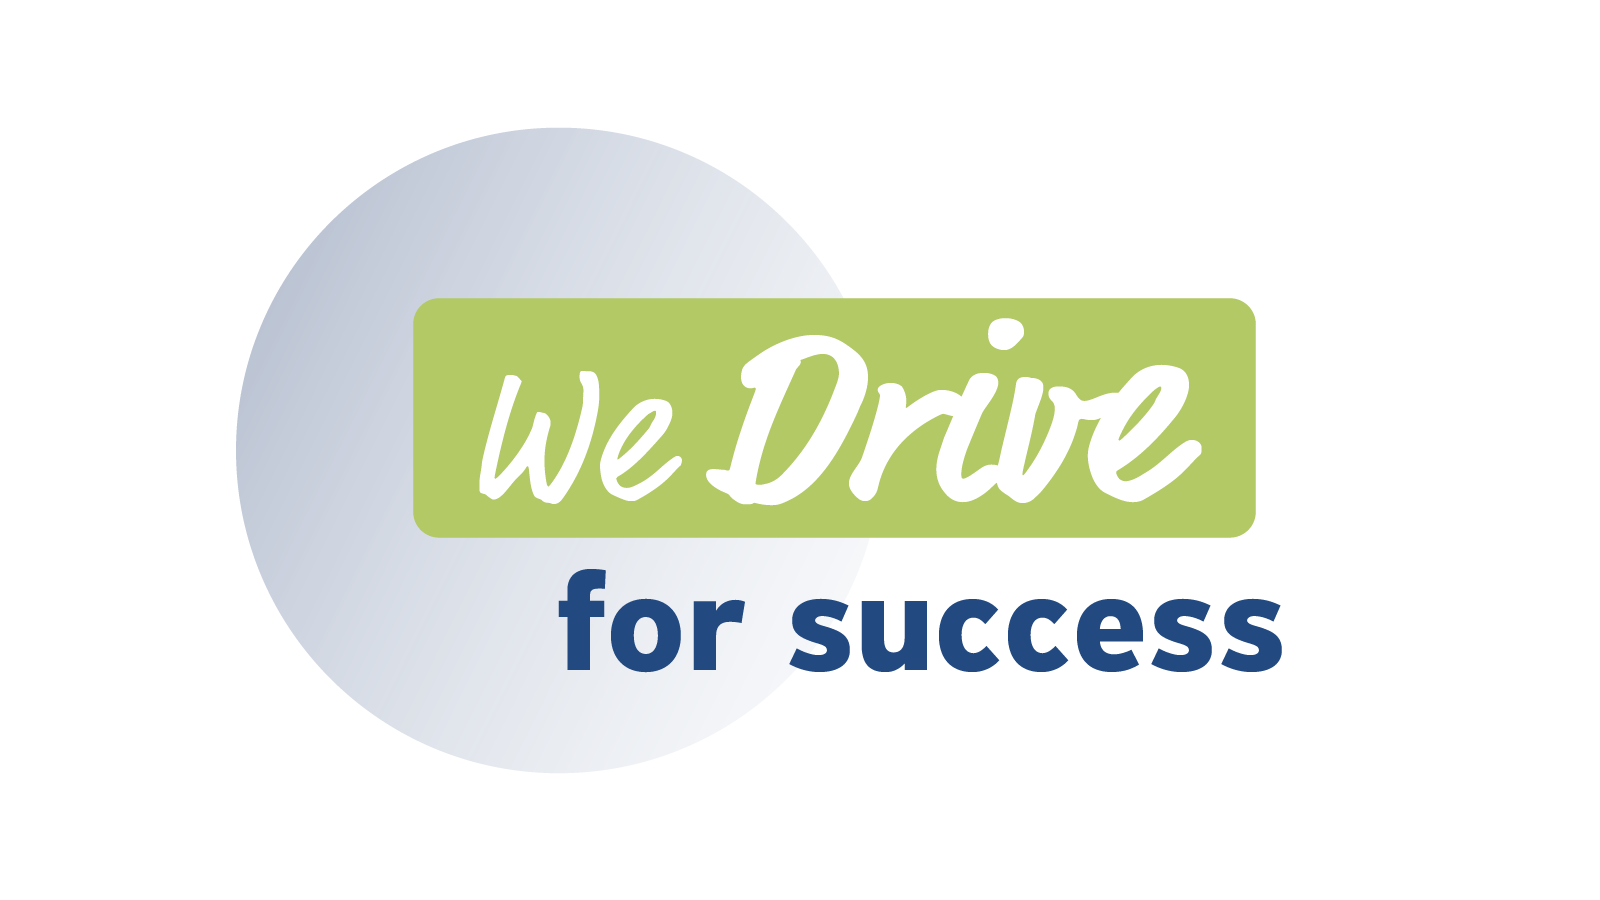 We Drive for Success